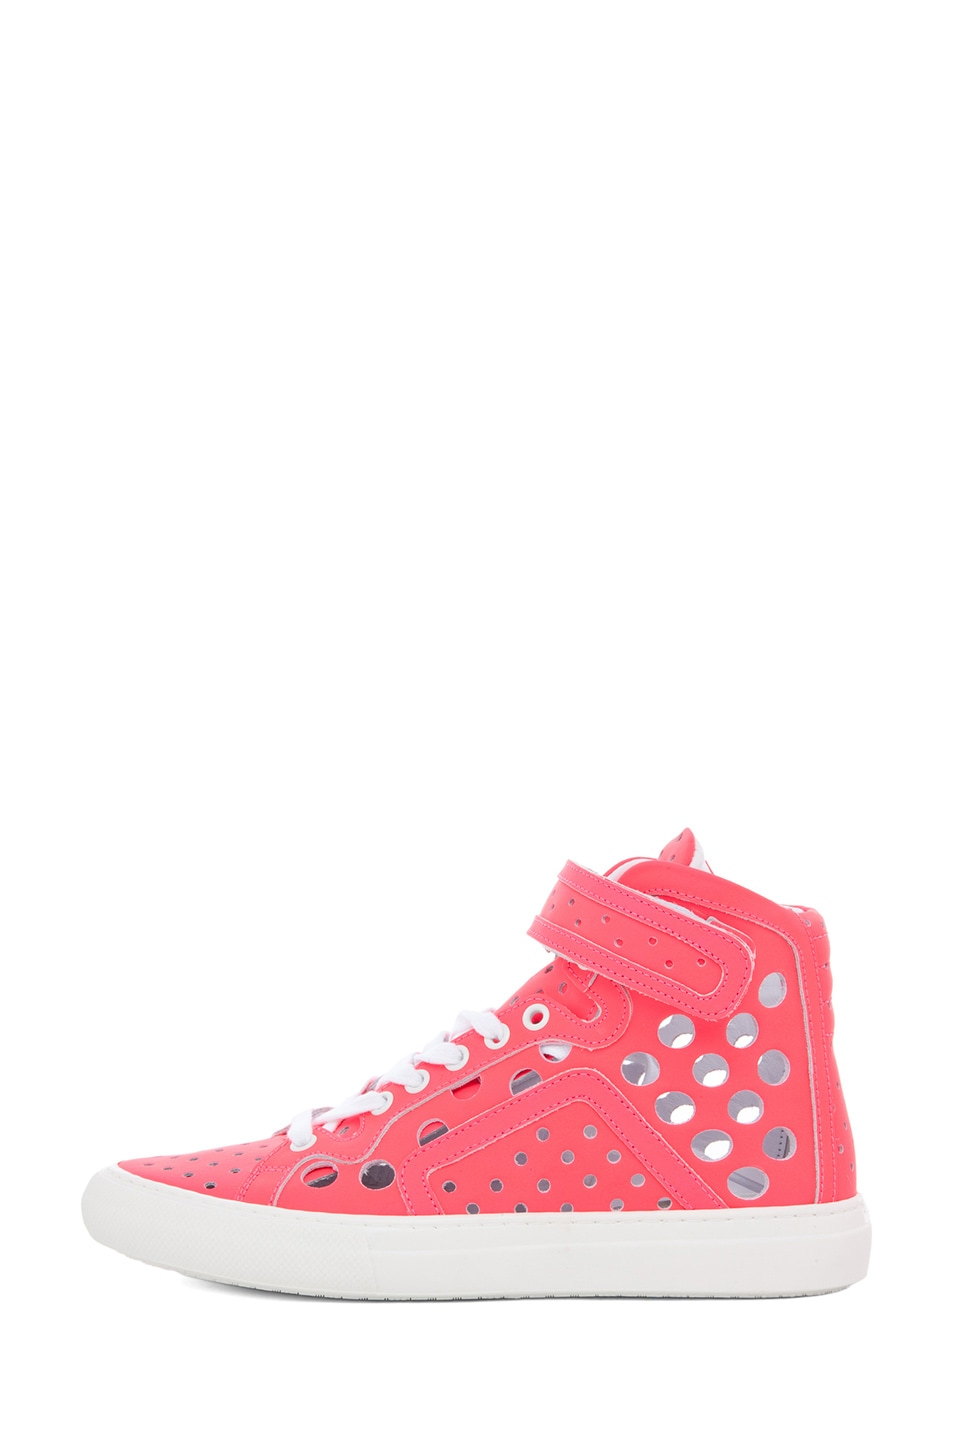 Image 1 of Pierre Hardy Sneaker in Neon Pink